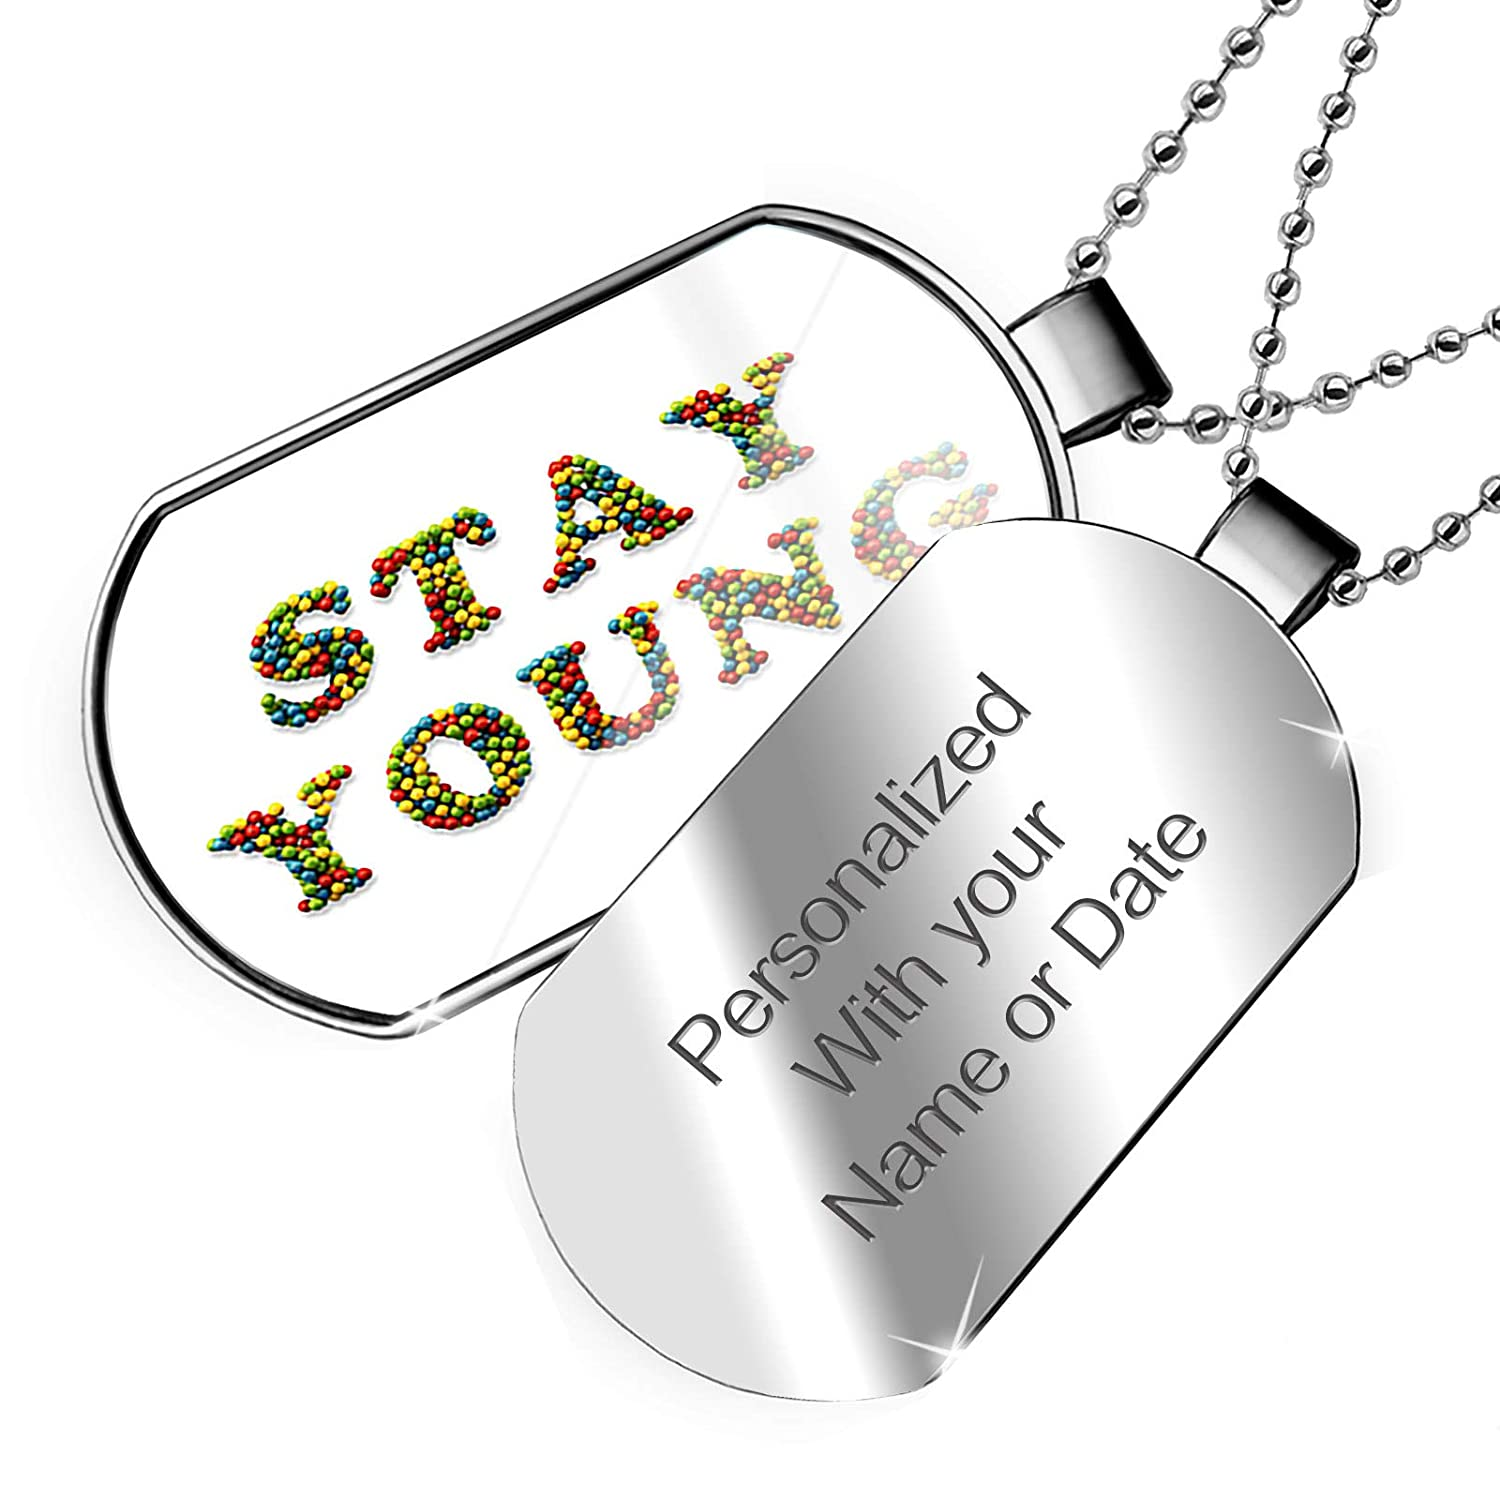 NEONBLOND Personalized Name Engraved Stay Young Playroom Toys Balls Dogtag Necklace